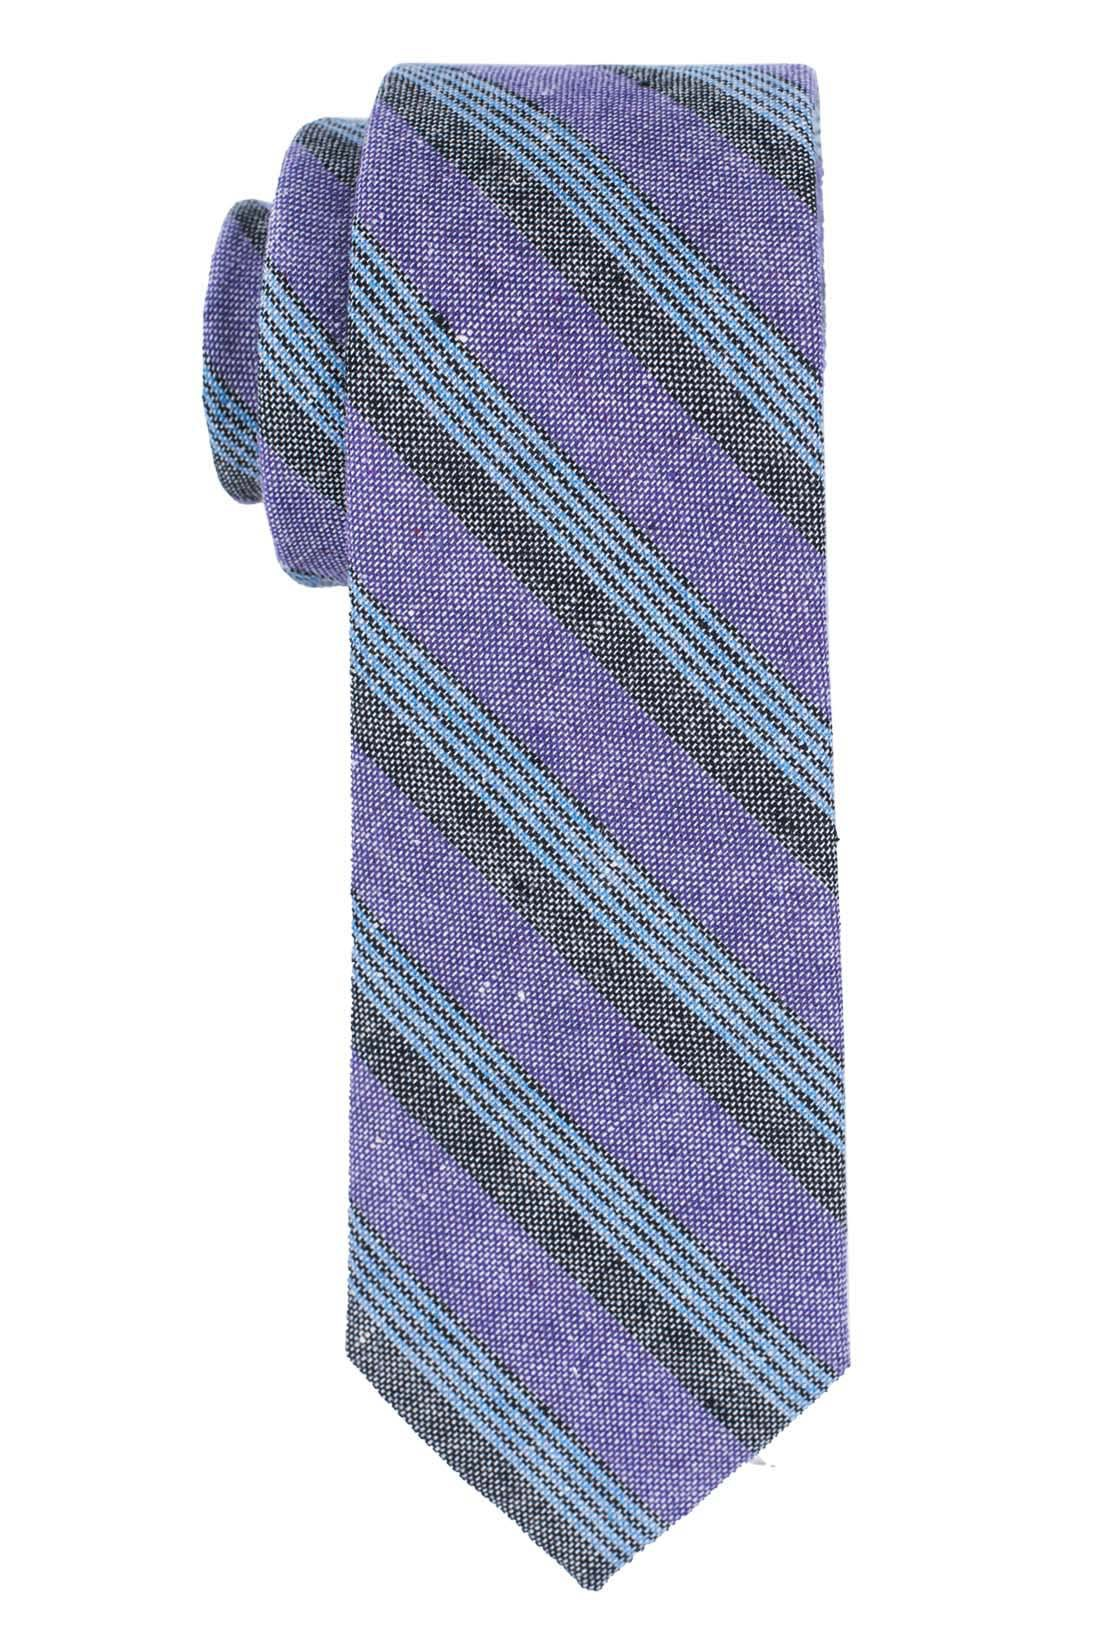 Marina Purple Stripe 100% Cotton Necktie